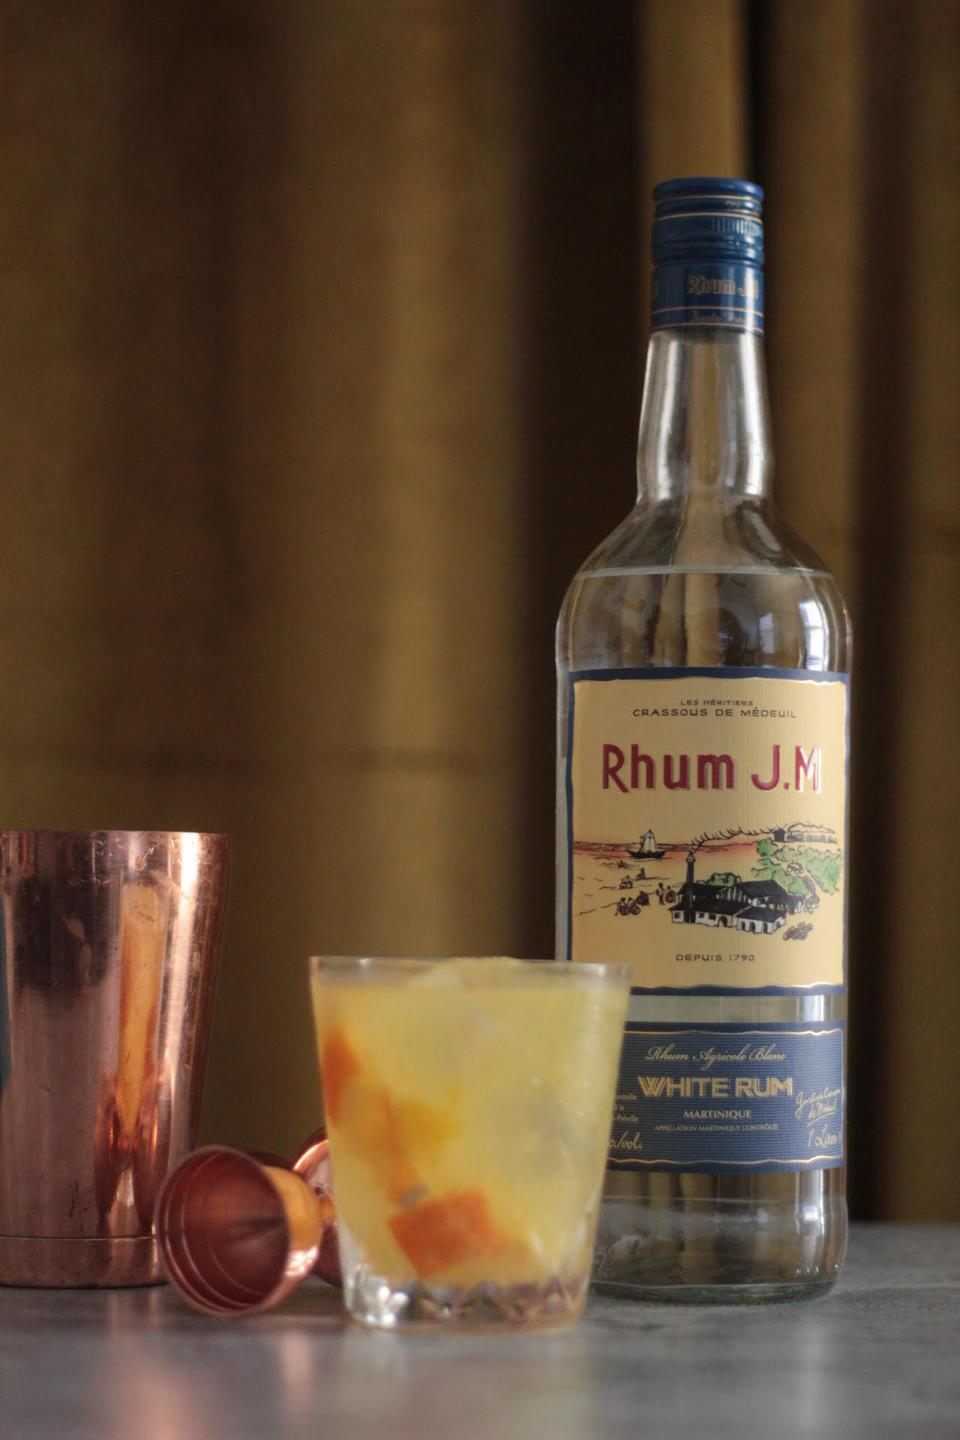 Bottle of Rhum J.M. next to Lucky Louis cocktail